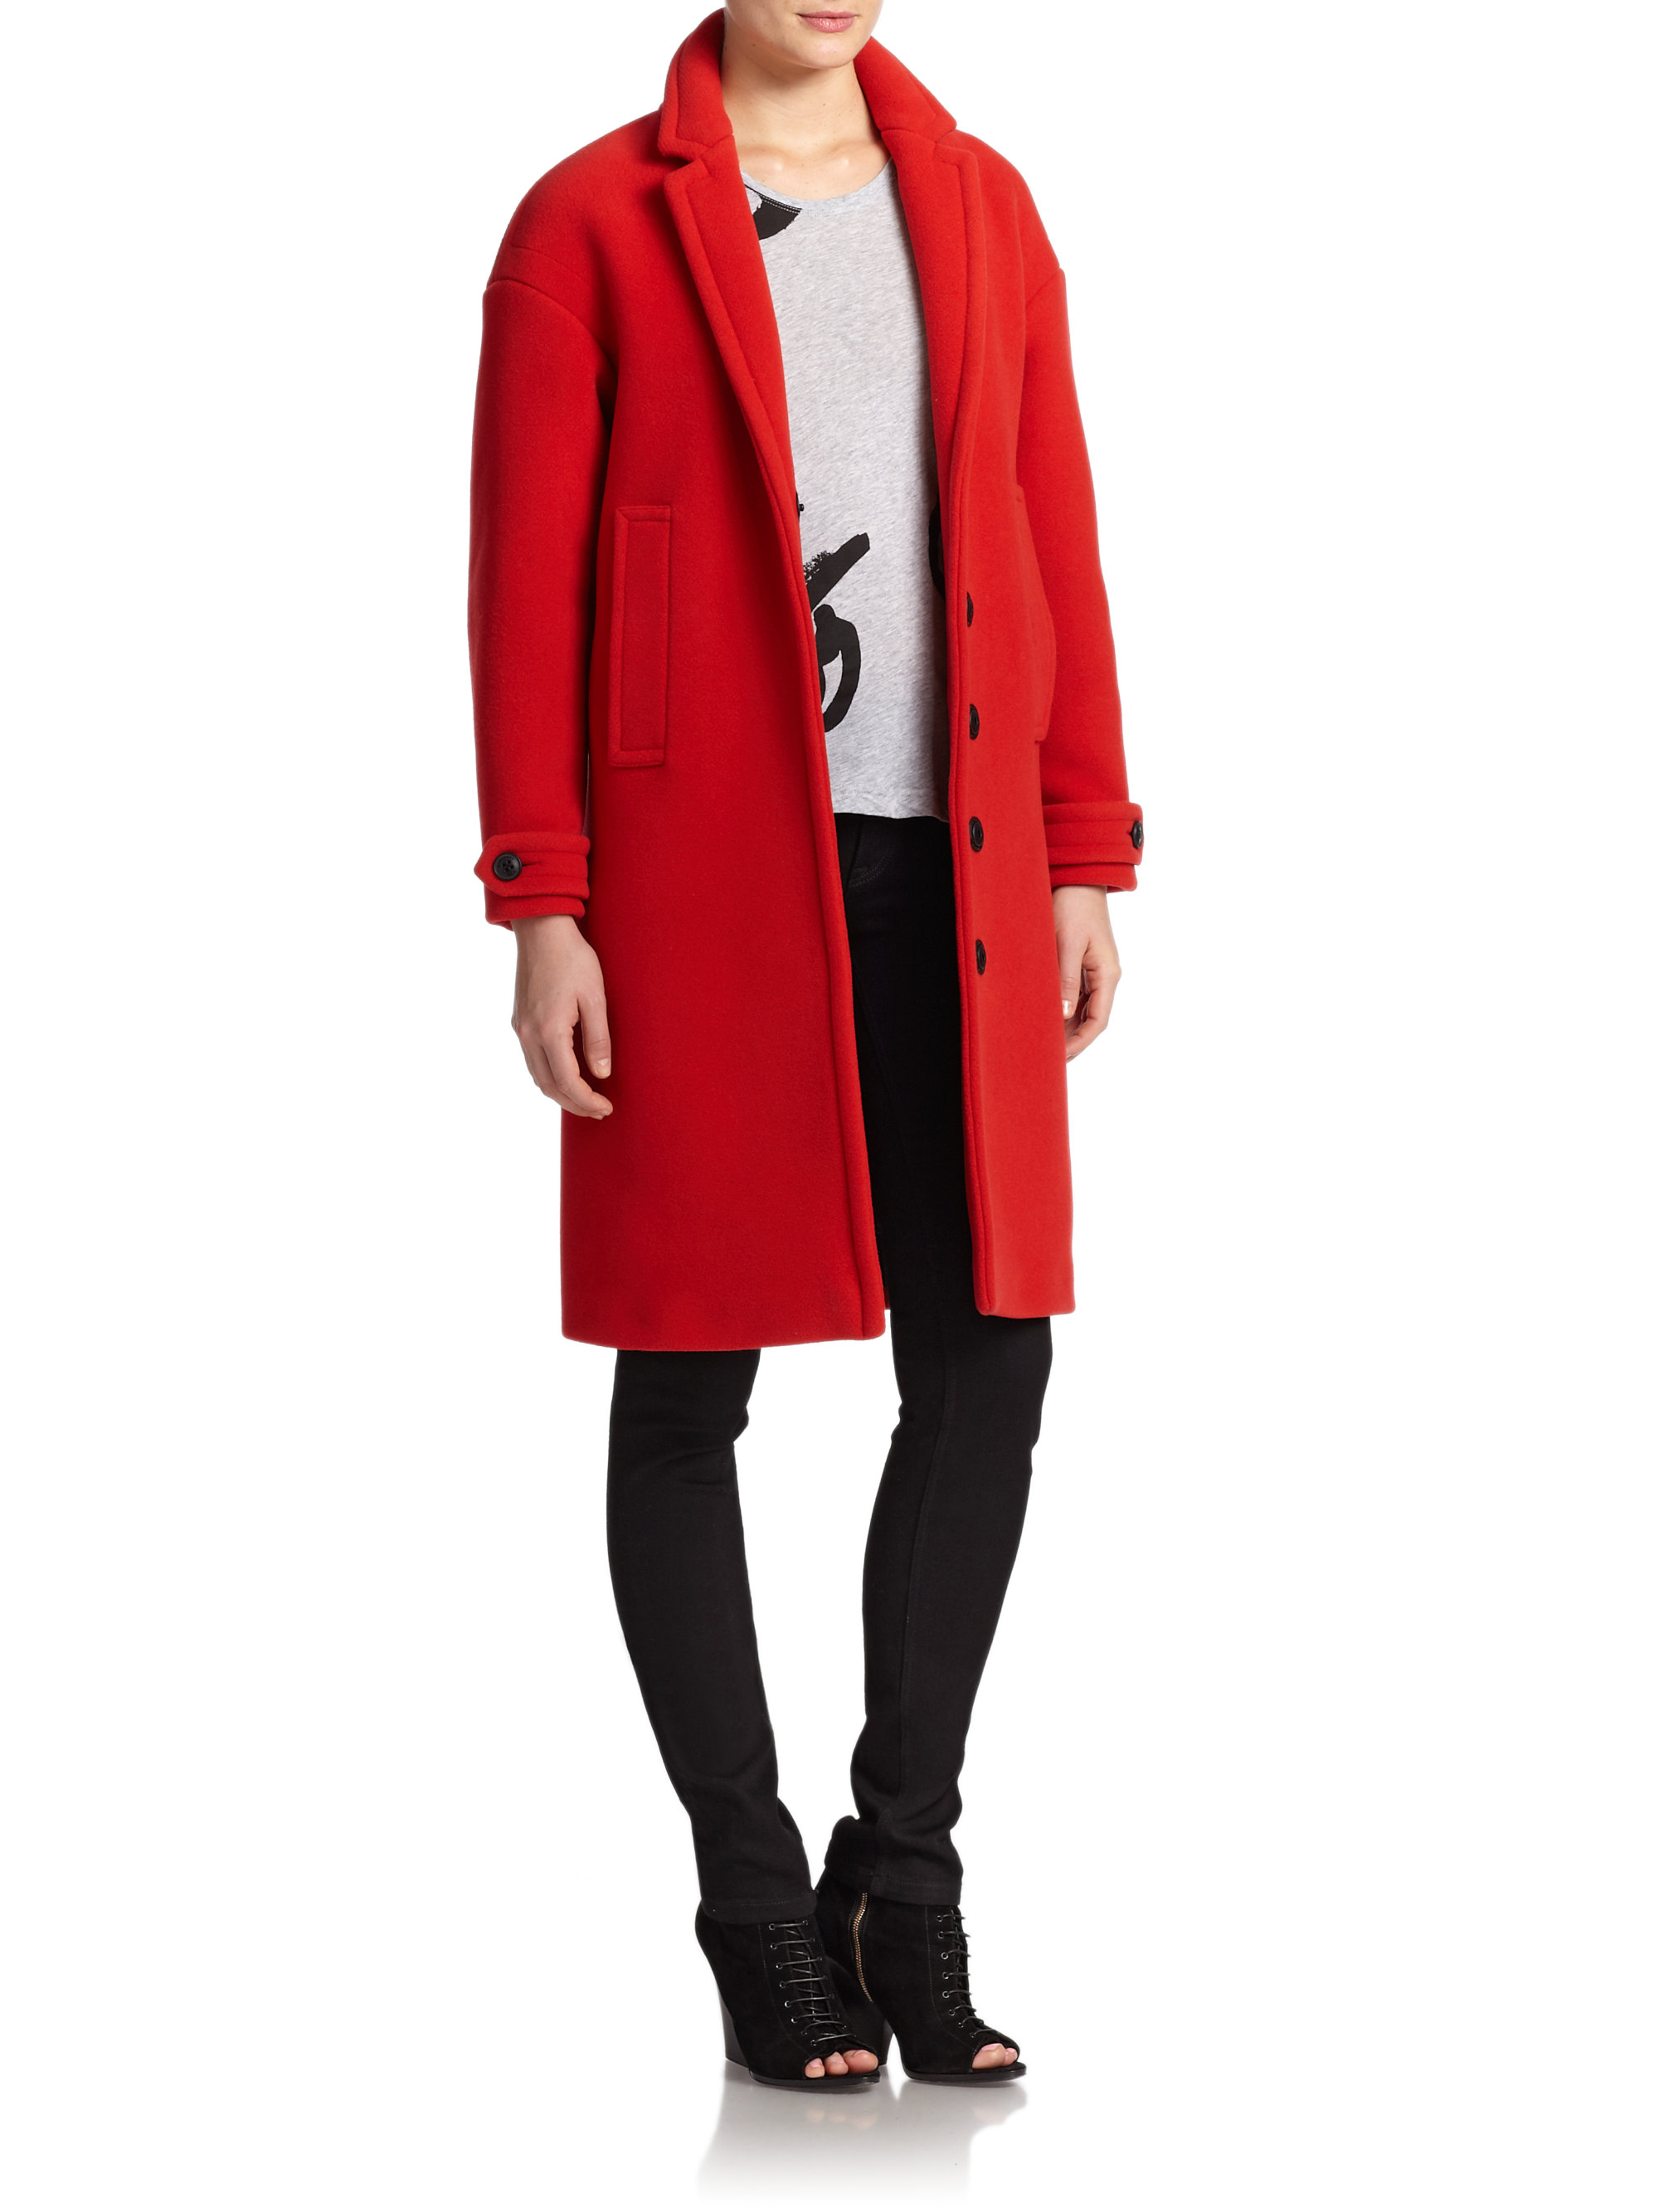 Find great deals on eBay for oversized wool coat. Shop with confidence.